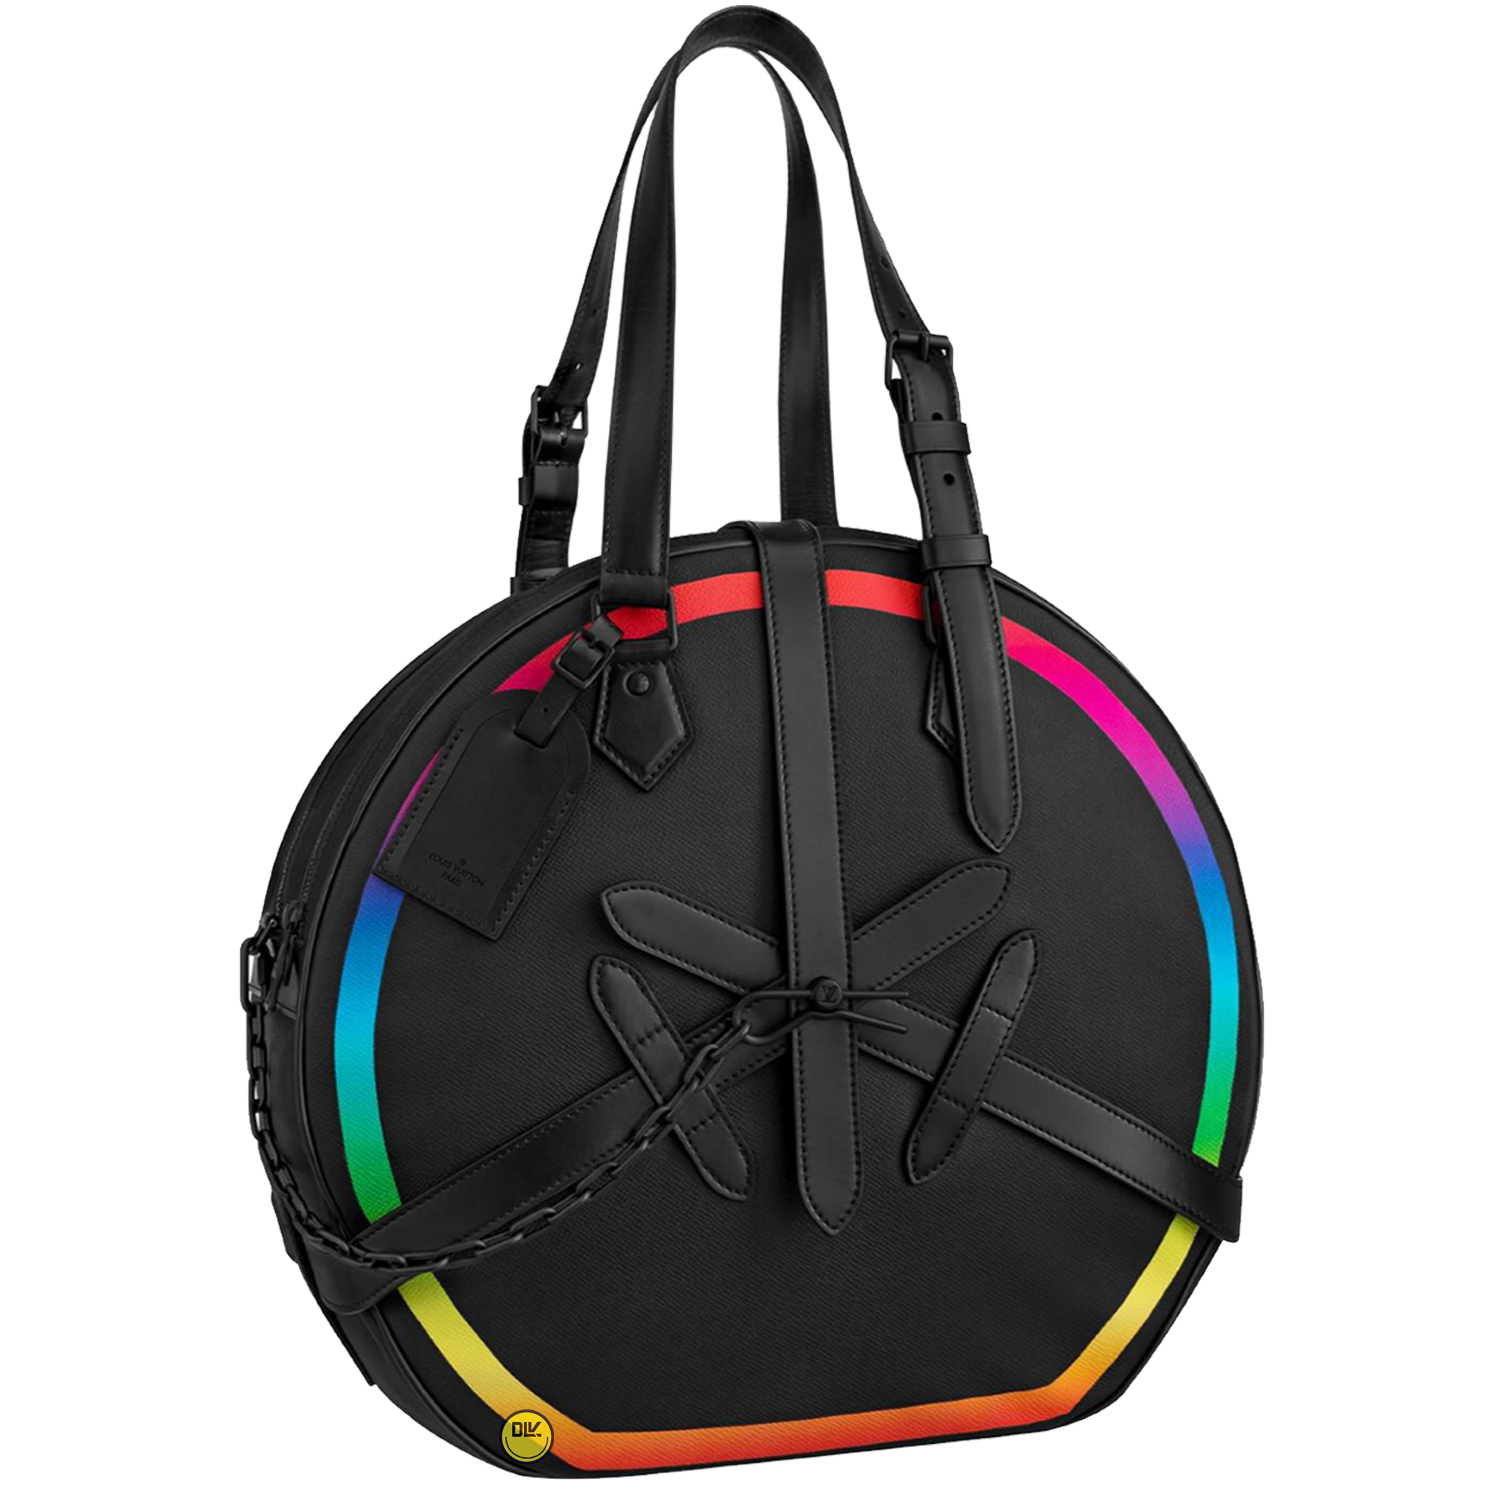 SOFT HAT TRUNK - €3900 $M30335TAIGA RAINBOW